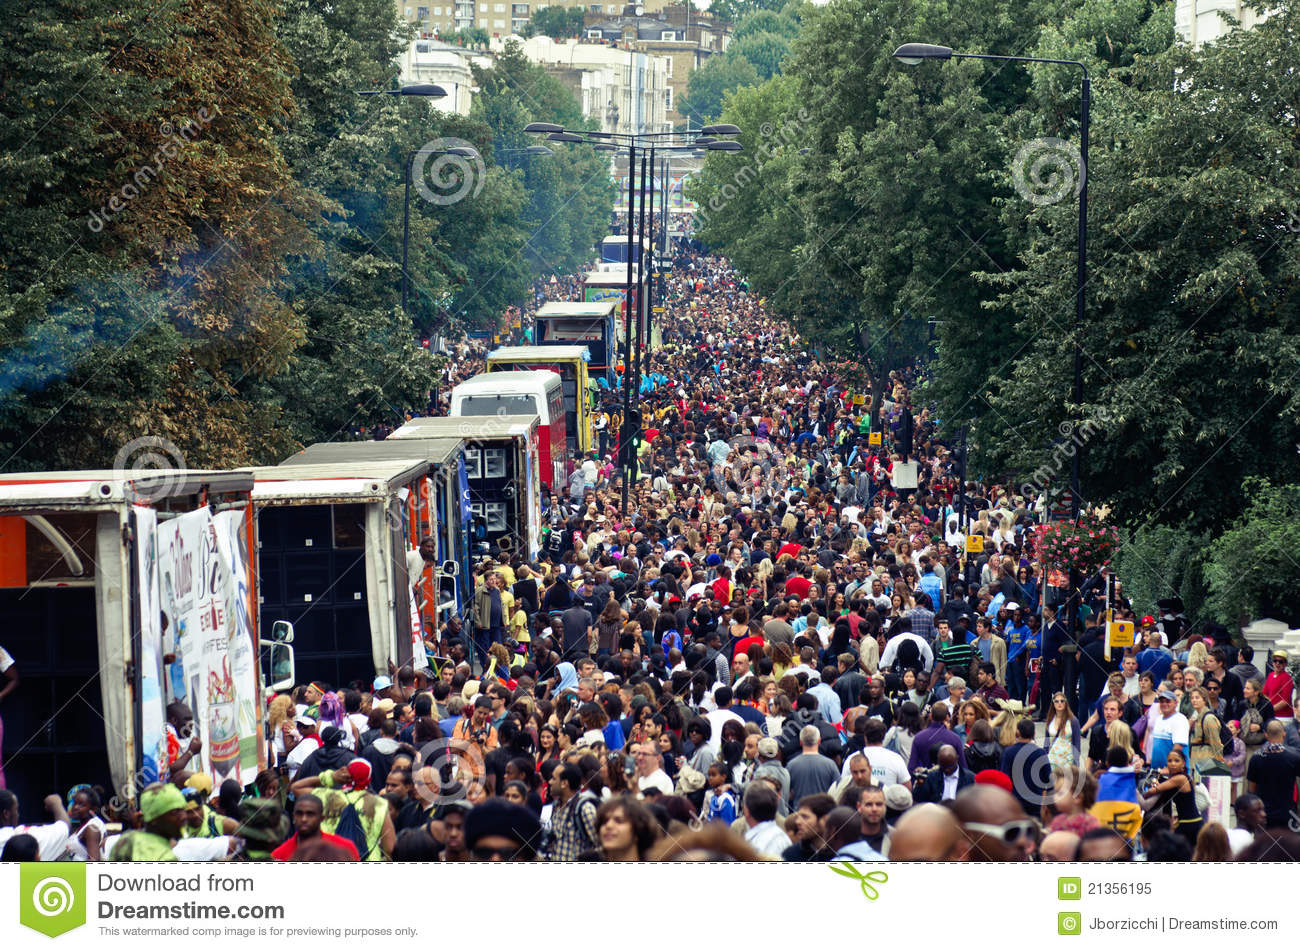 Notting Hill Ladbroke Grove notting hill s carnival in west london, uk editorial image